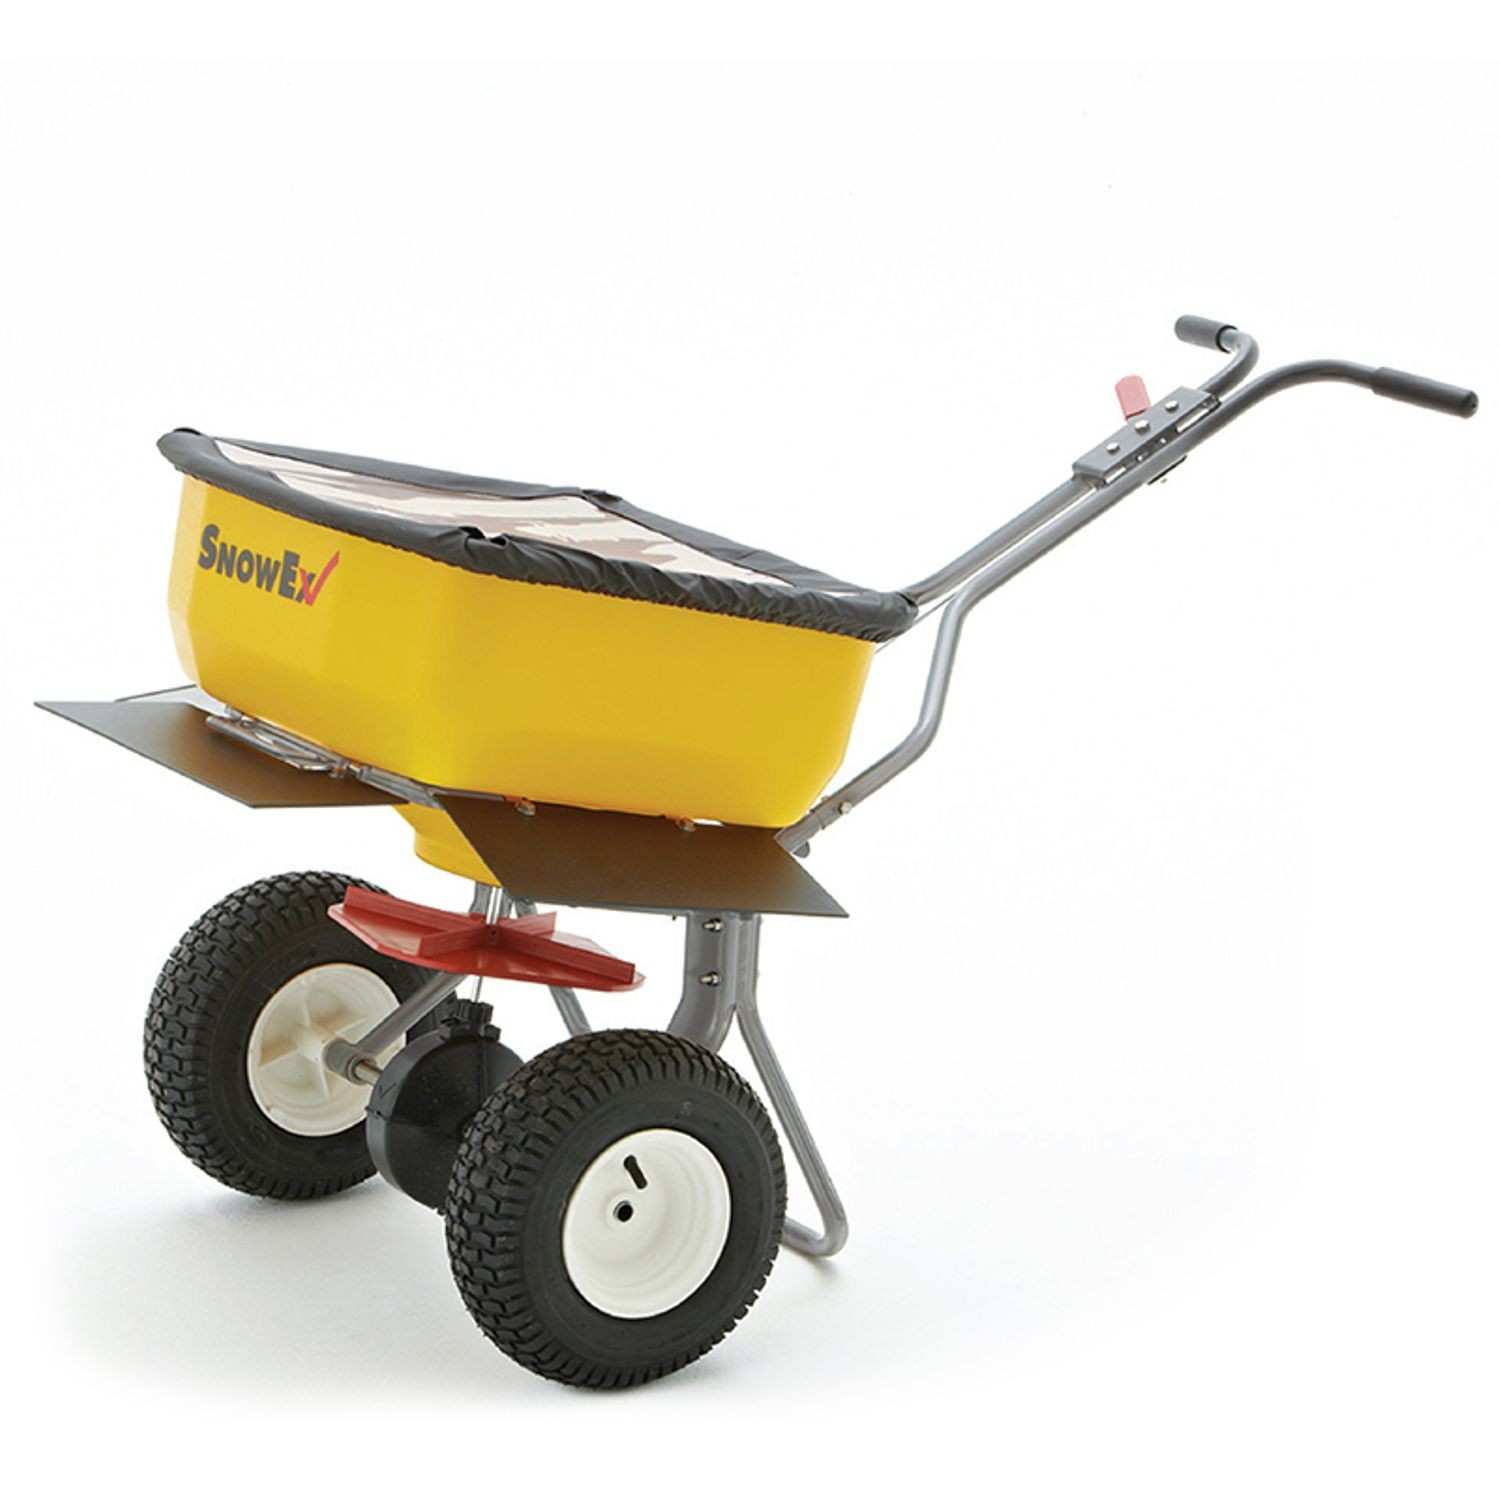 SnowEx - Walk Behind Broadcast Spreader with Stainless Steel Frame - 160 LBS